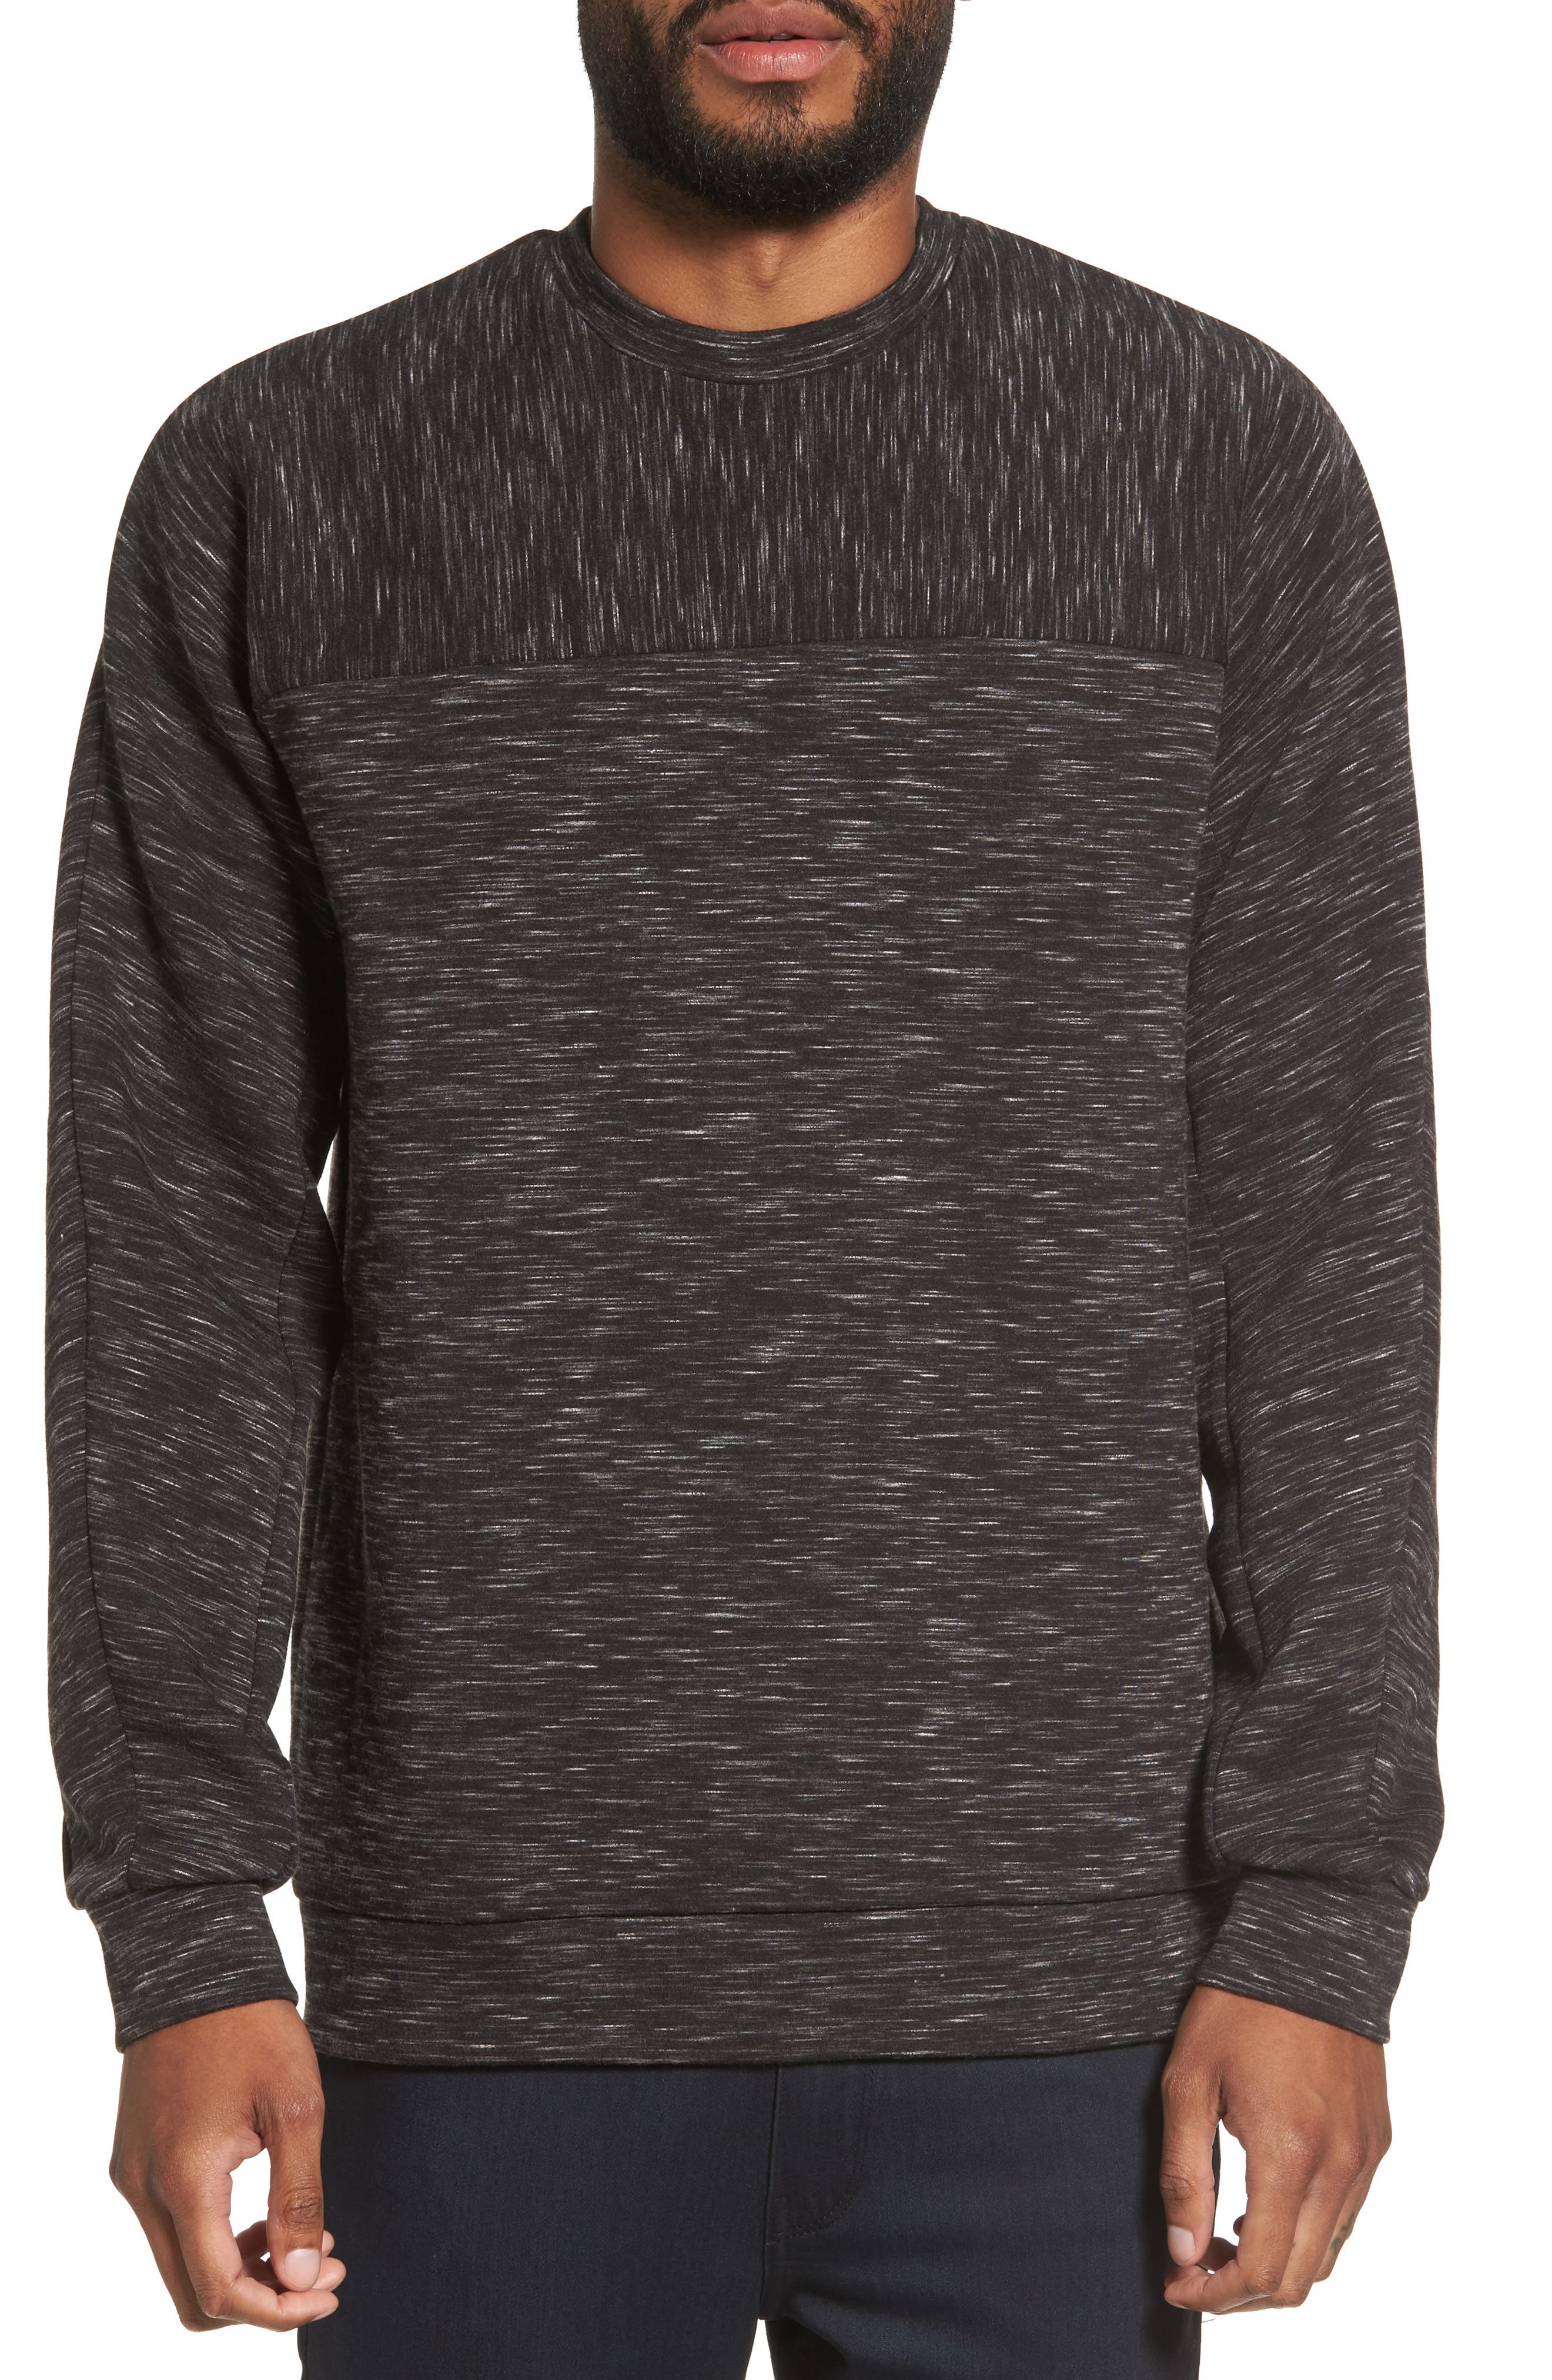 Calibrate Side Zip Crewneck Sweatshirt